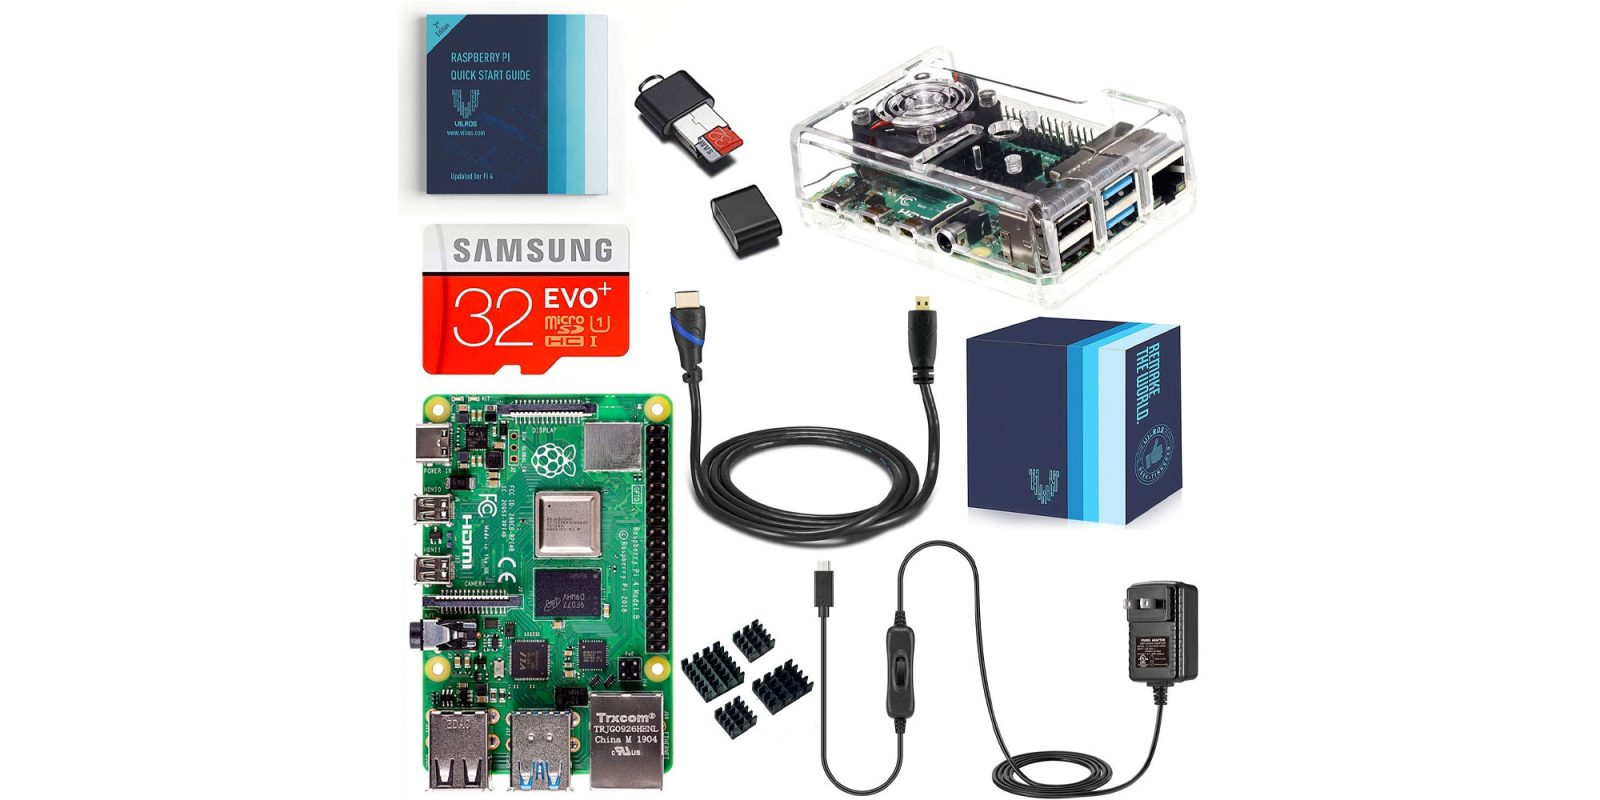 Add a Raspberry Pi 4 2GB starter kit to your smart home at just $65 (Reg. $90)